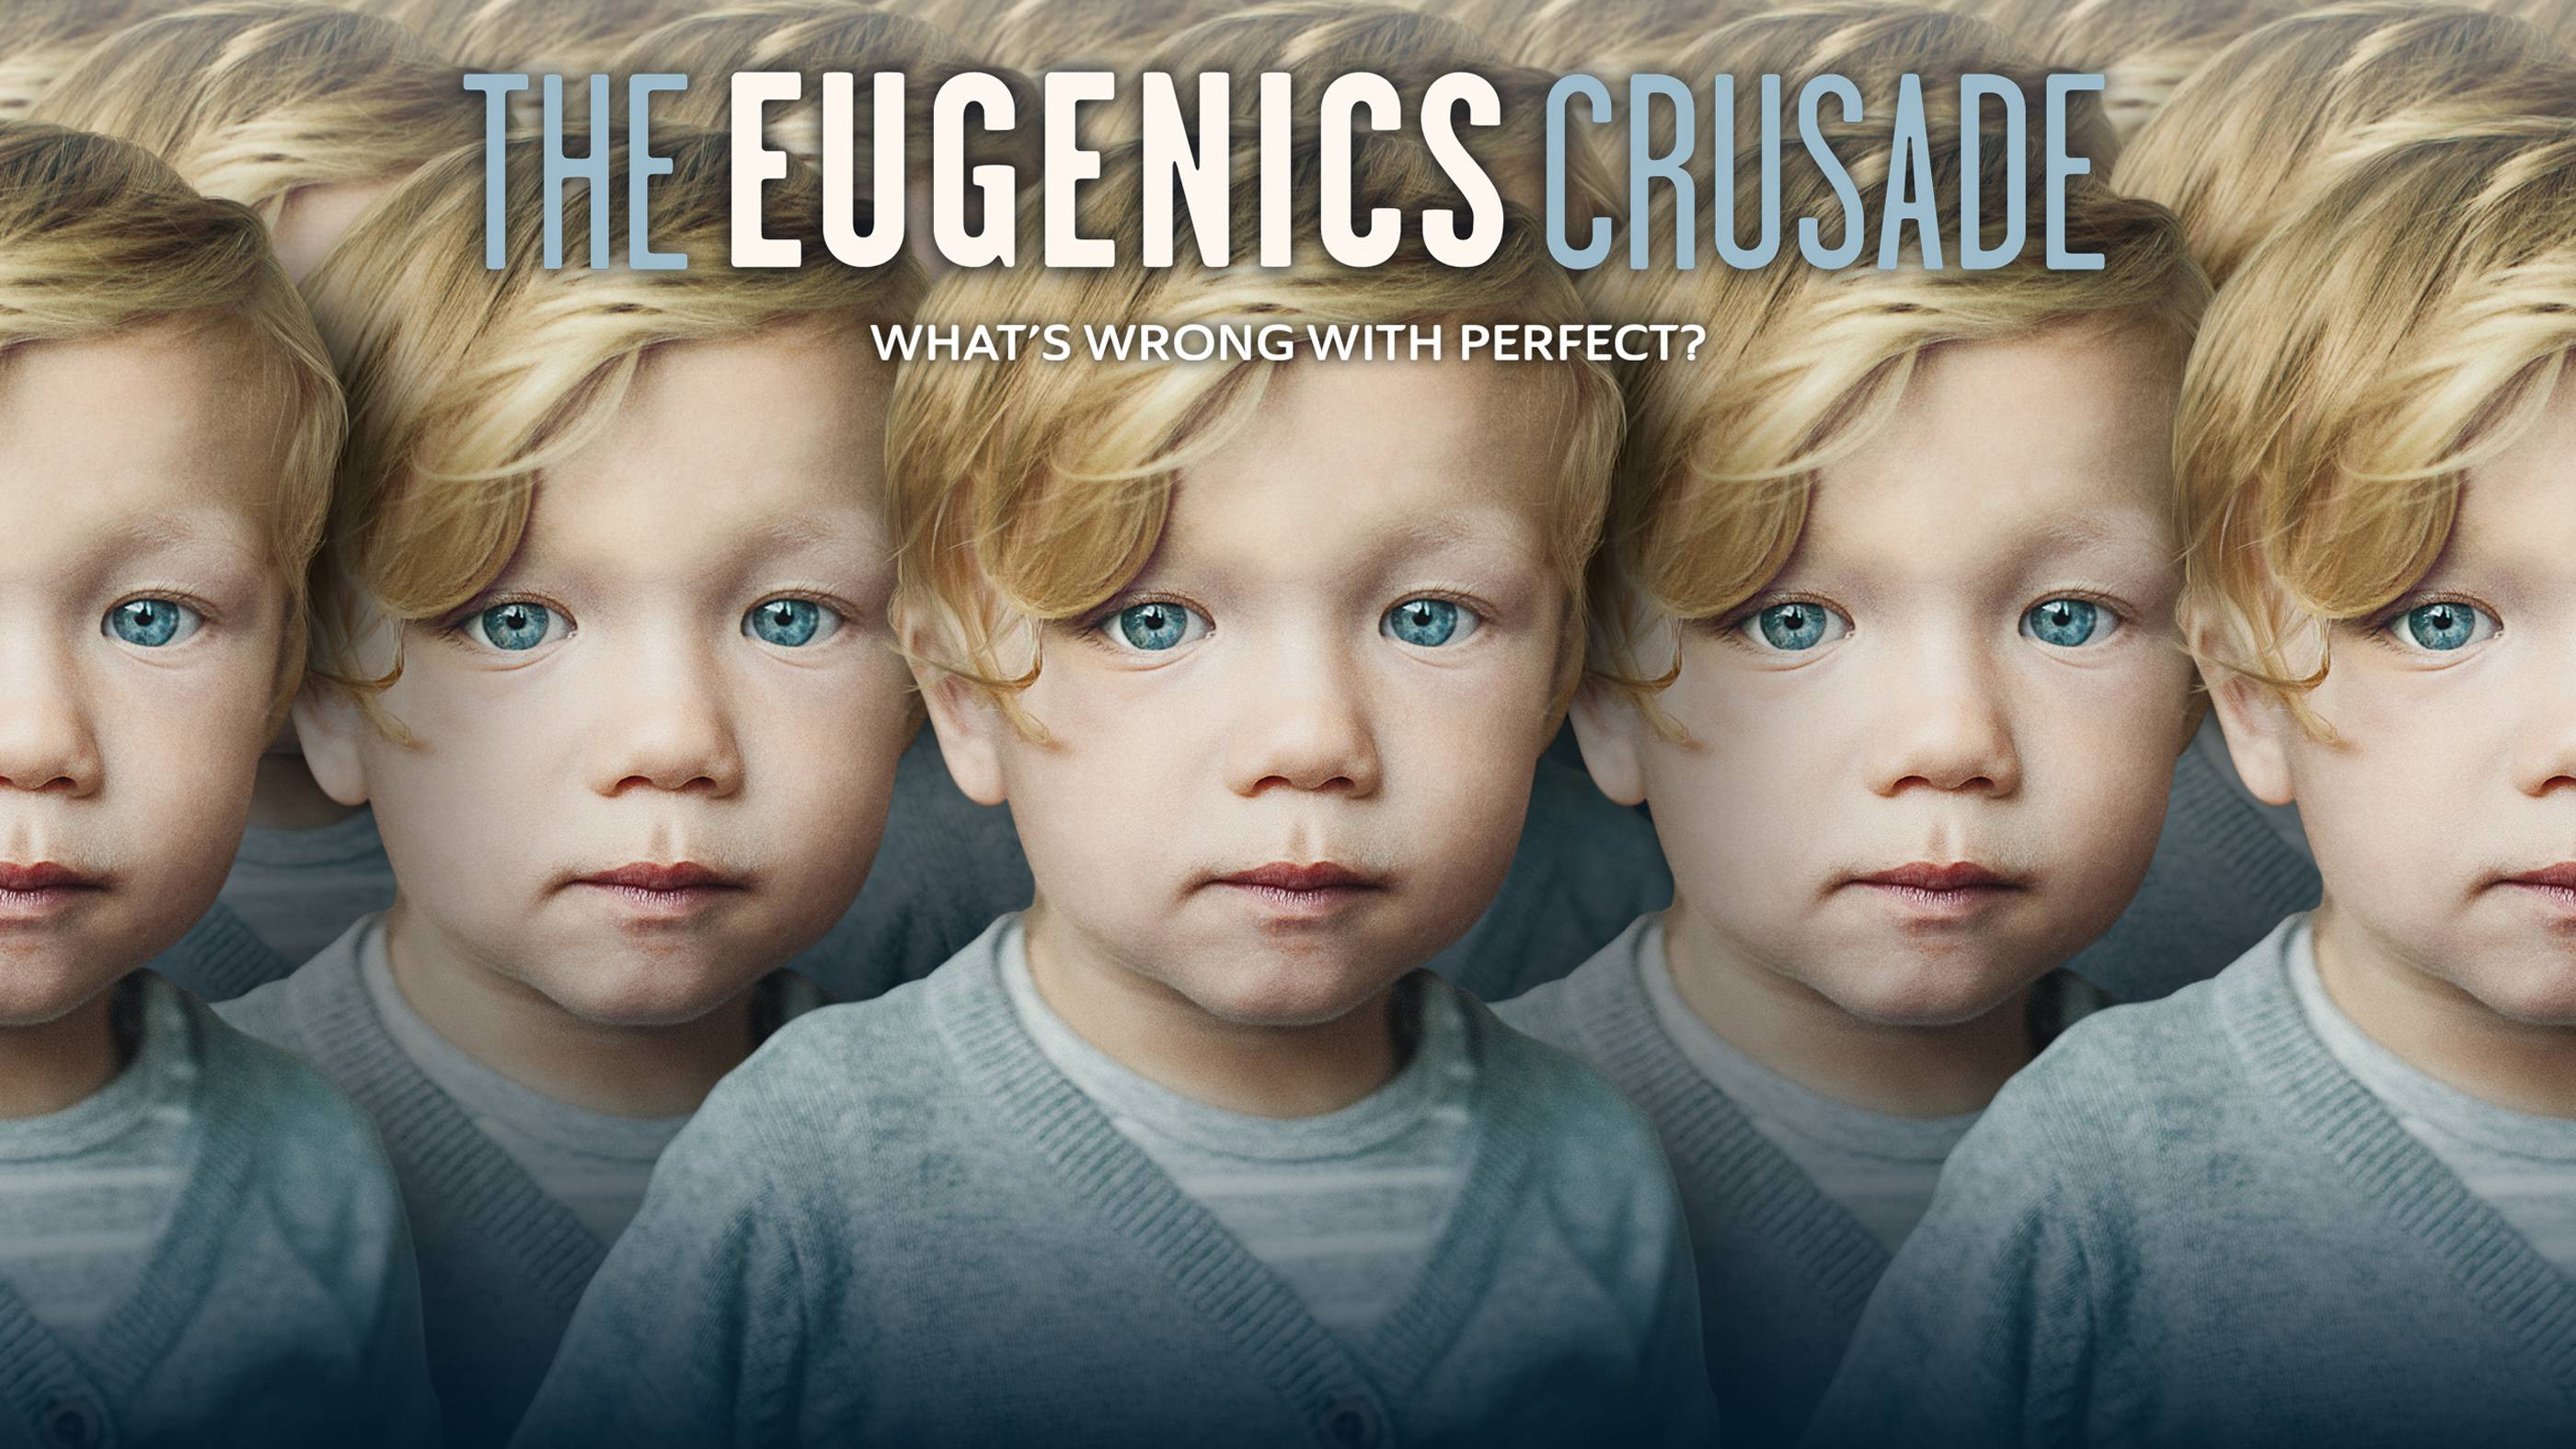 The Eugenics Crusade, on PBS's The American Experience